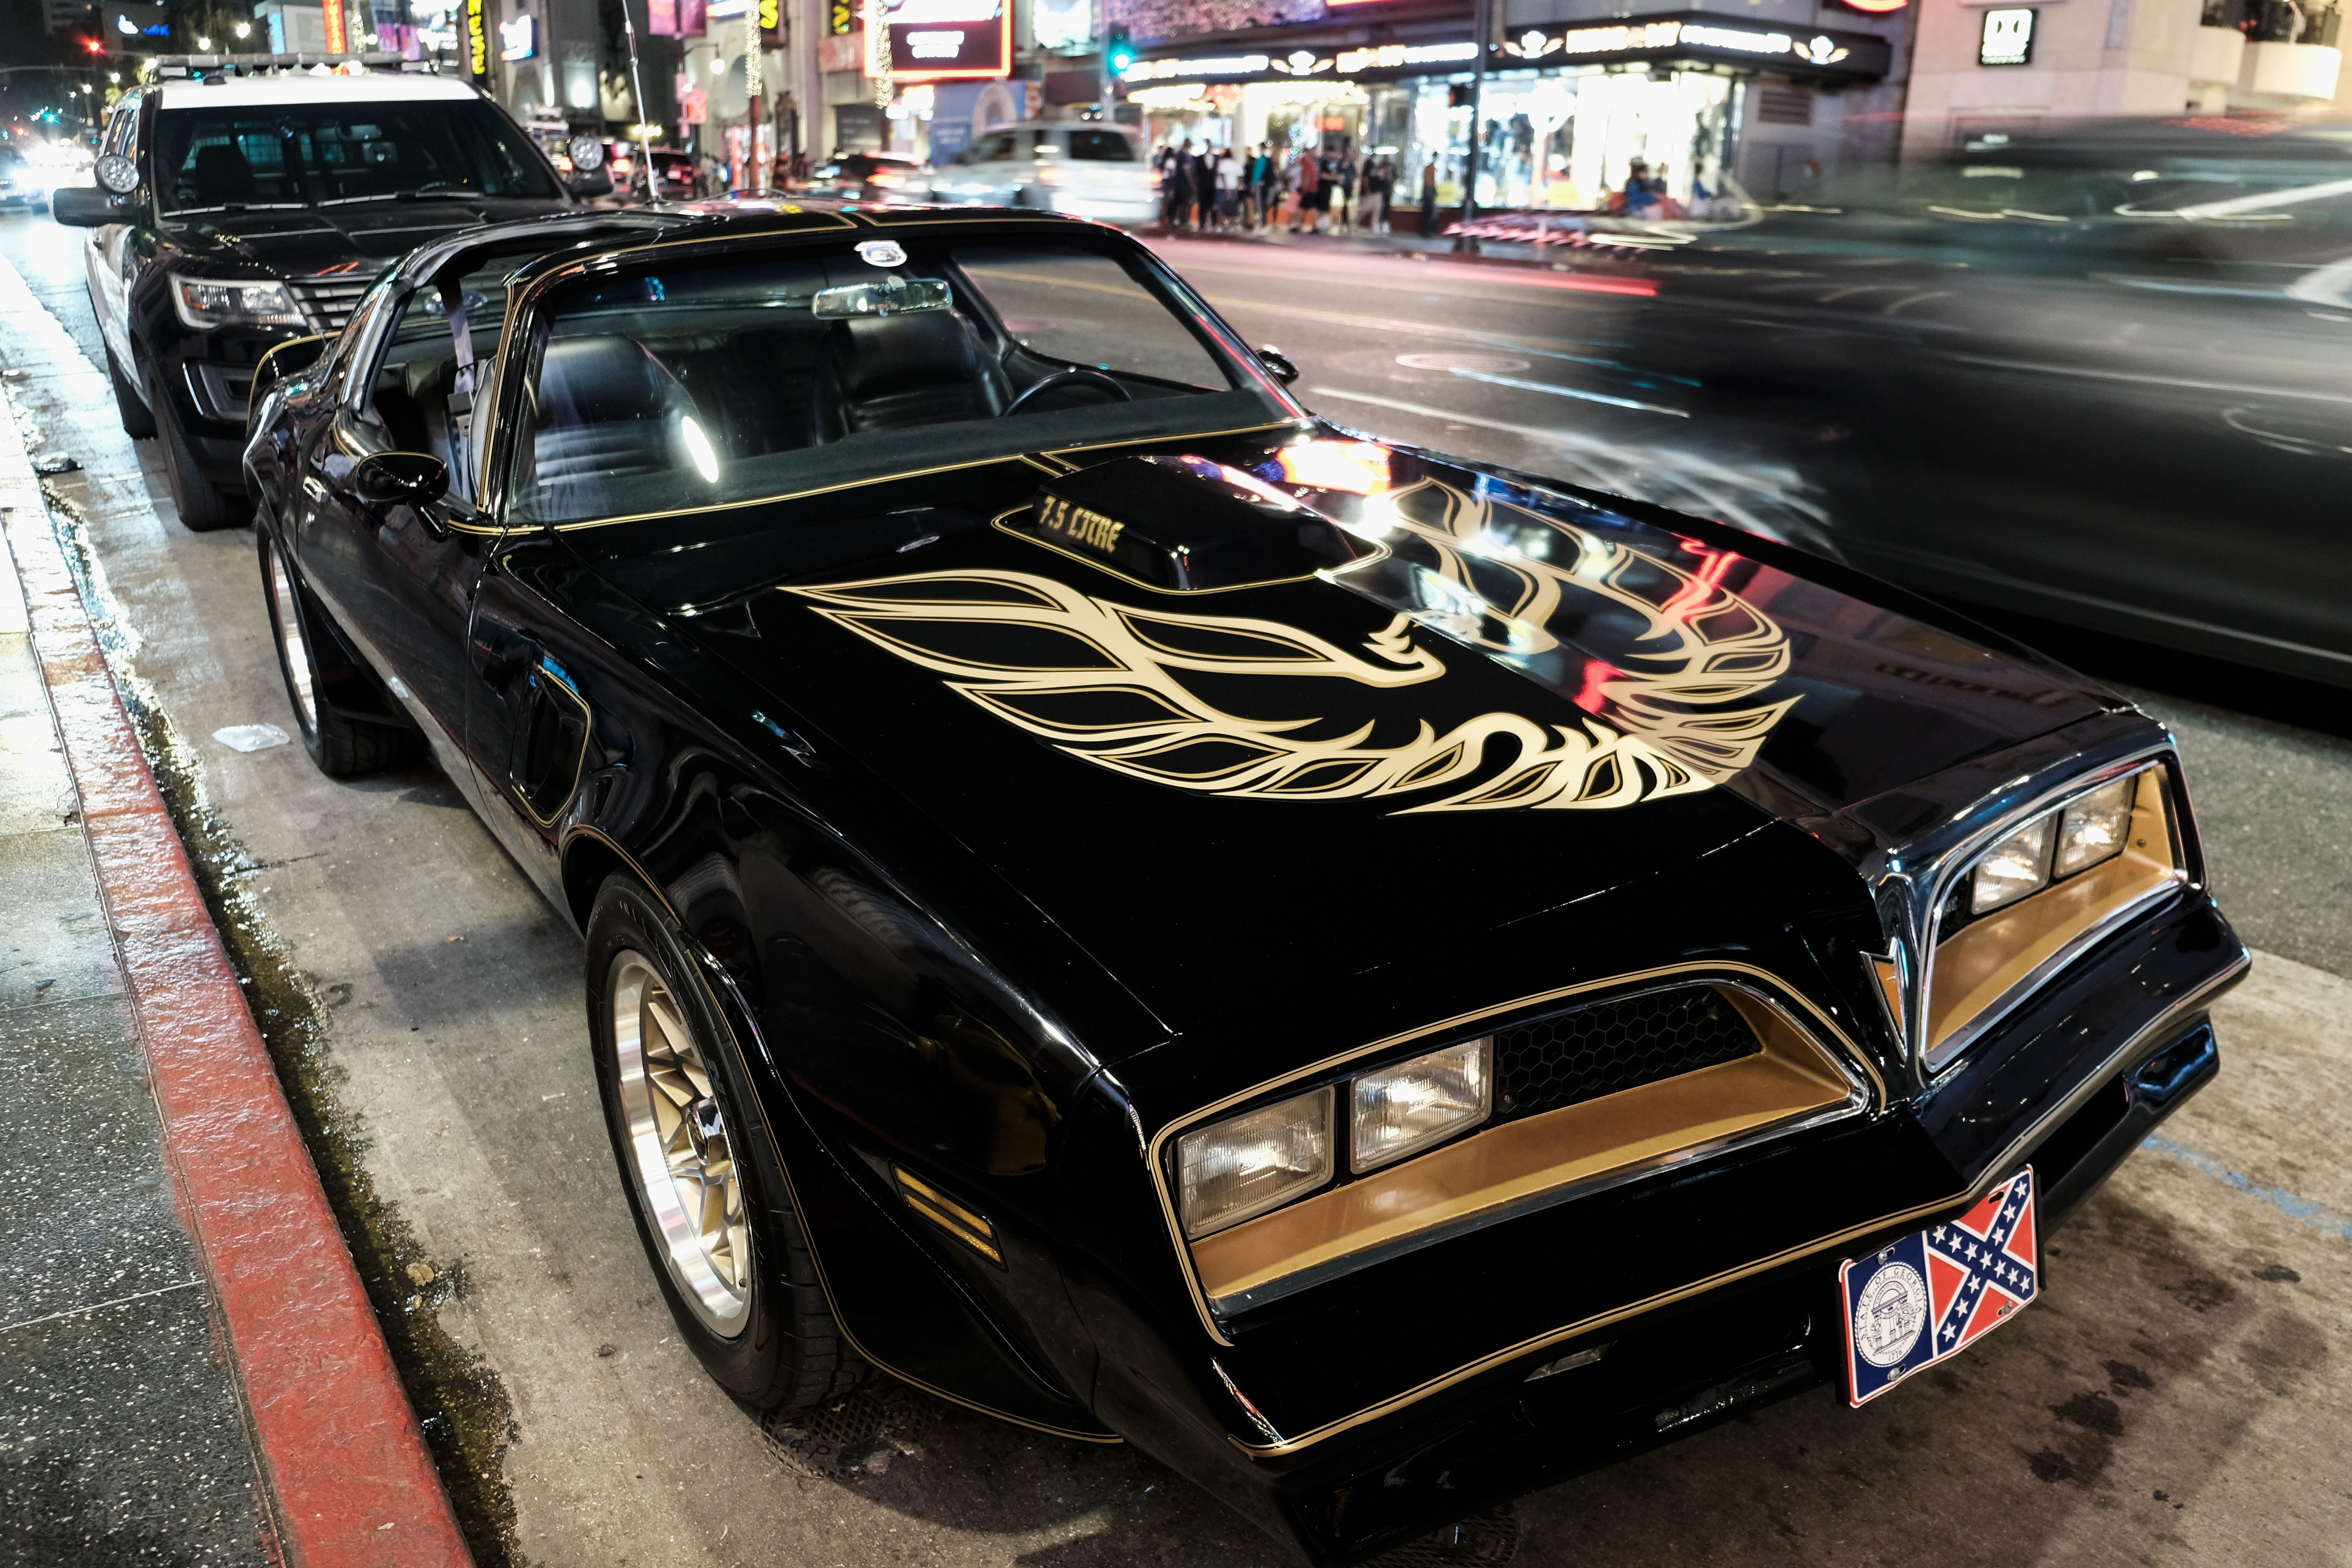 "The Pontiac Firebird Trans Am from Burt Reynolds' film ""Smokey and the Bandit"" is seen in front of Burt Reynolds' star on the Hollywood Walk of Fame on Sept. 6, 2018, in Los Angeles."